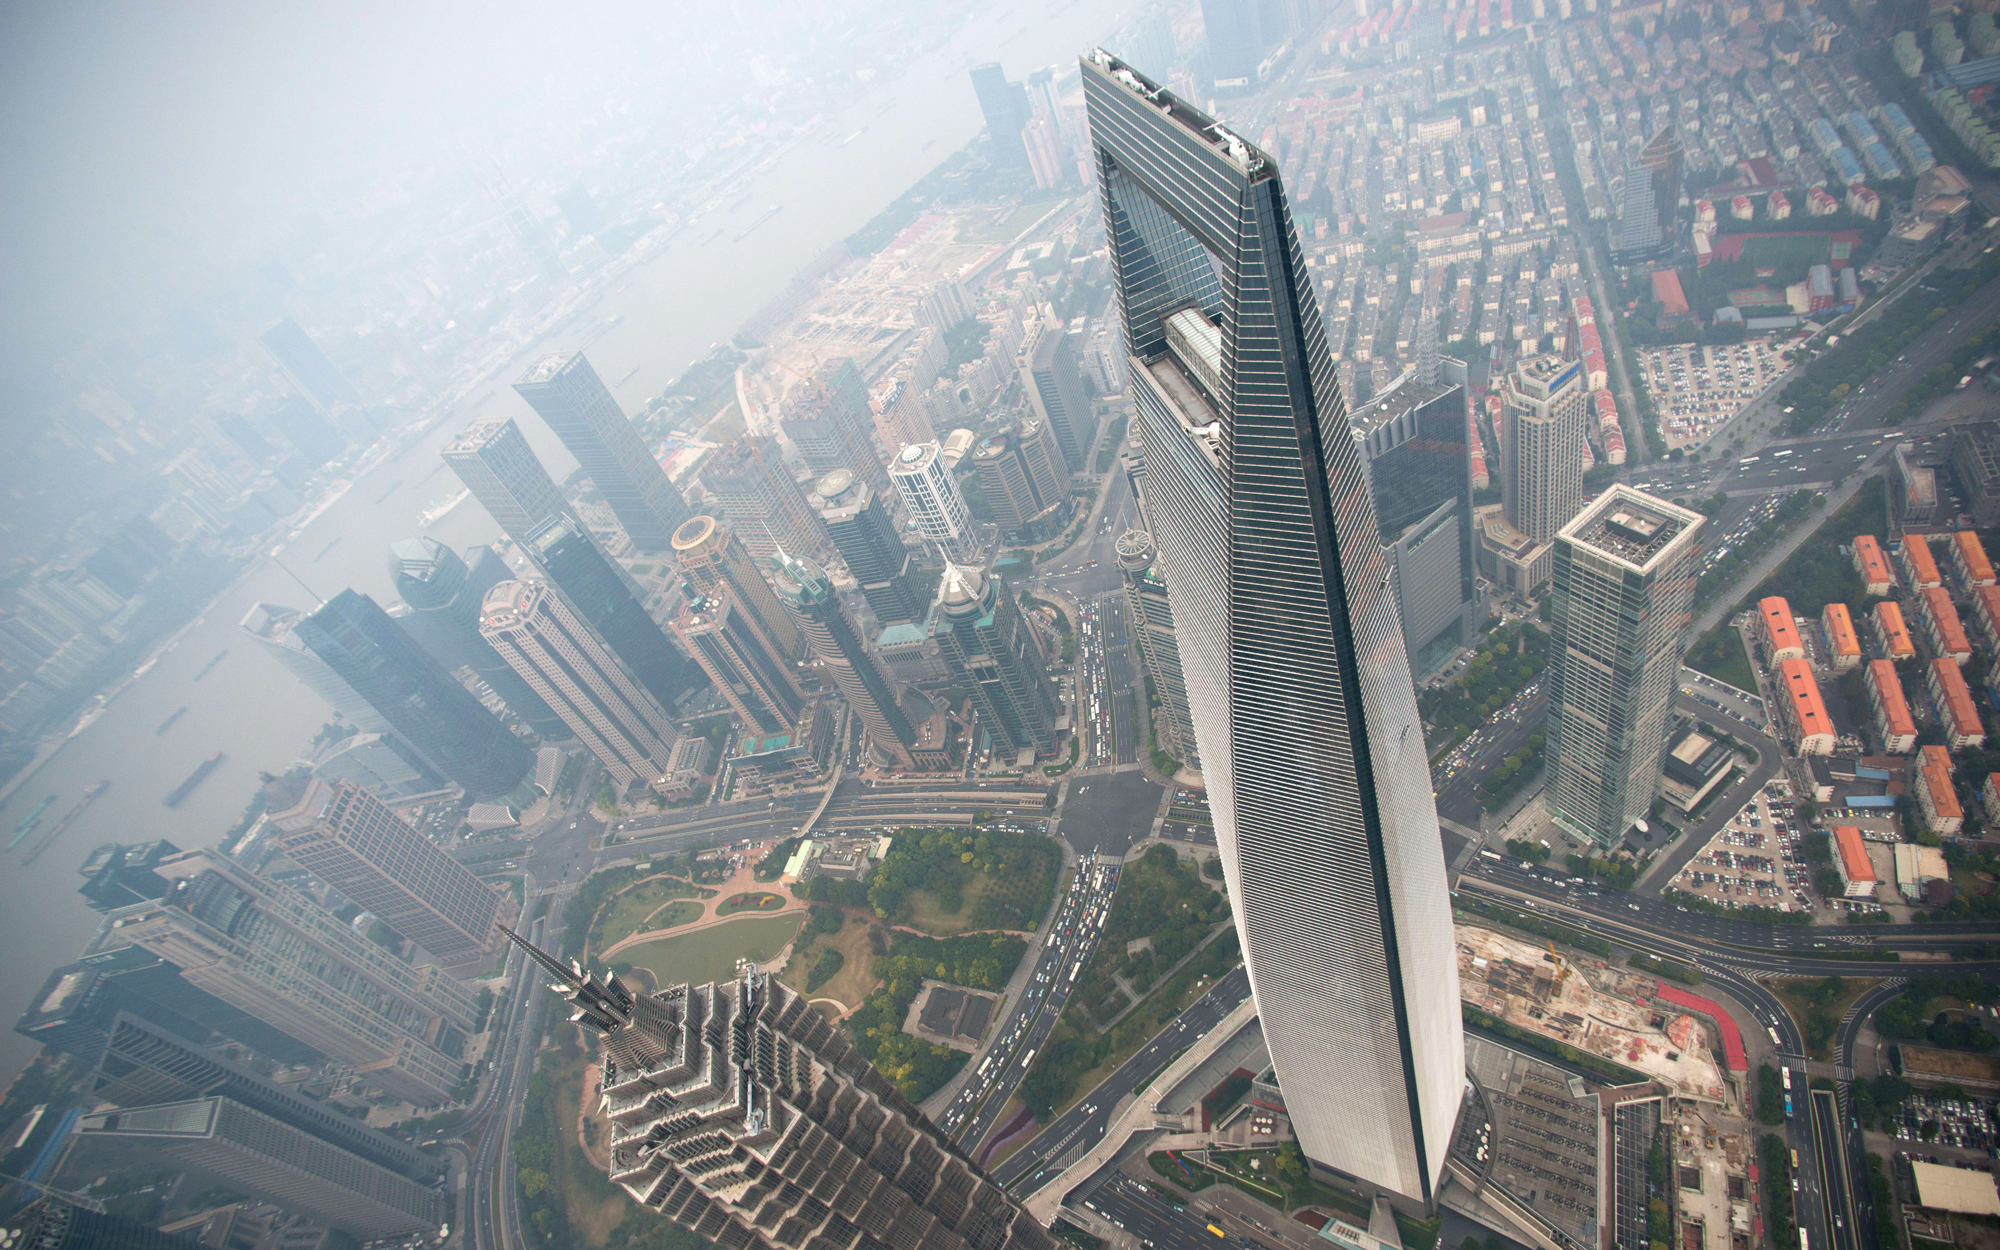 9. Shanghai World Financial Center, Shanghai (1,614 feet)